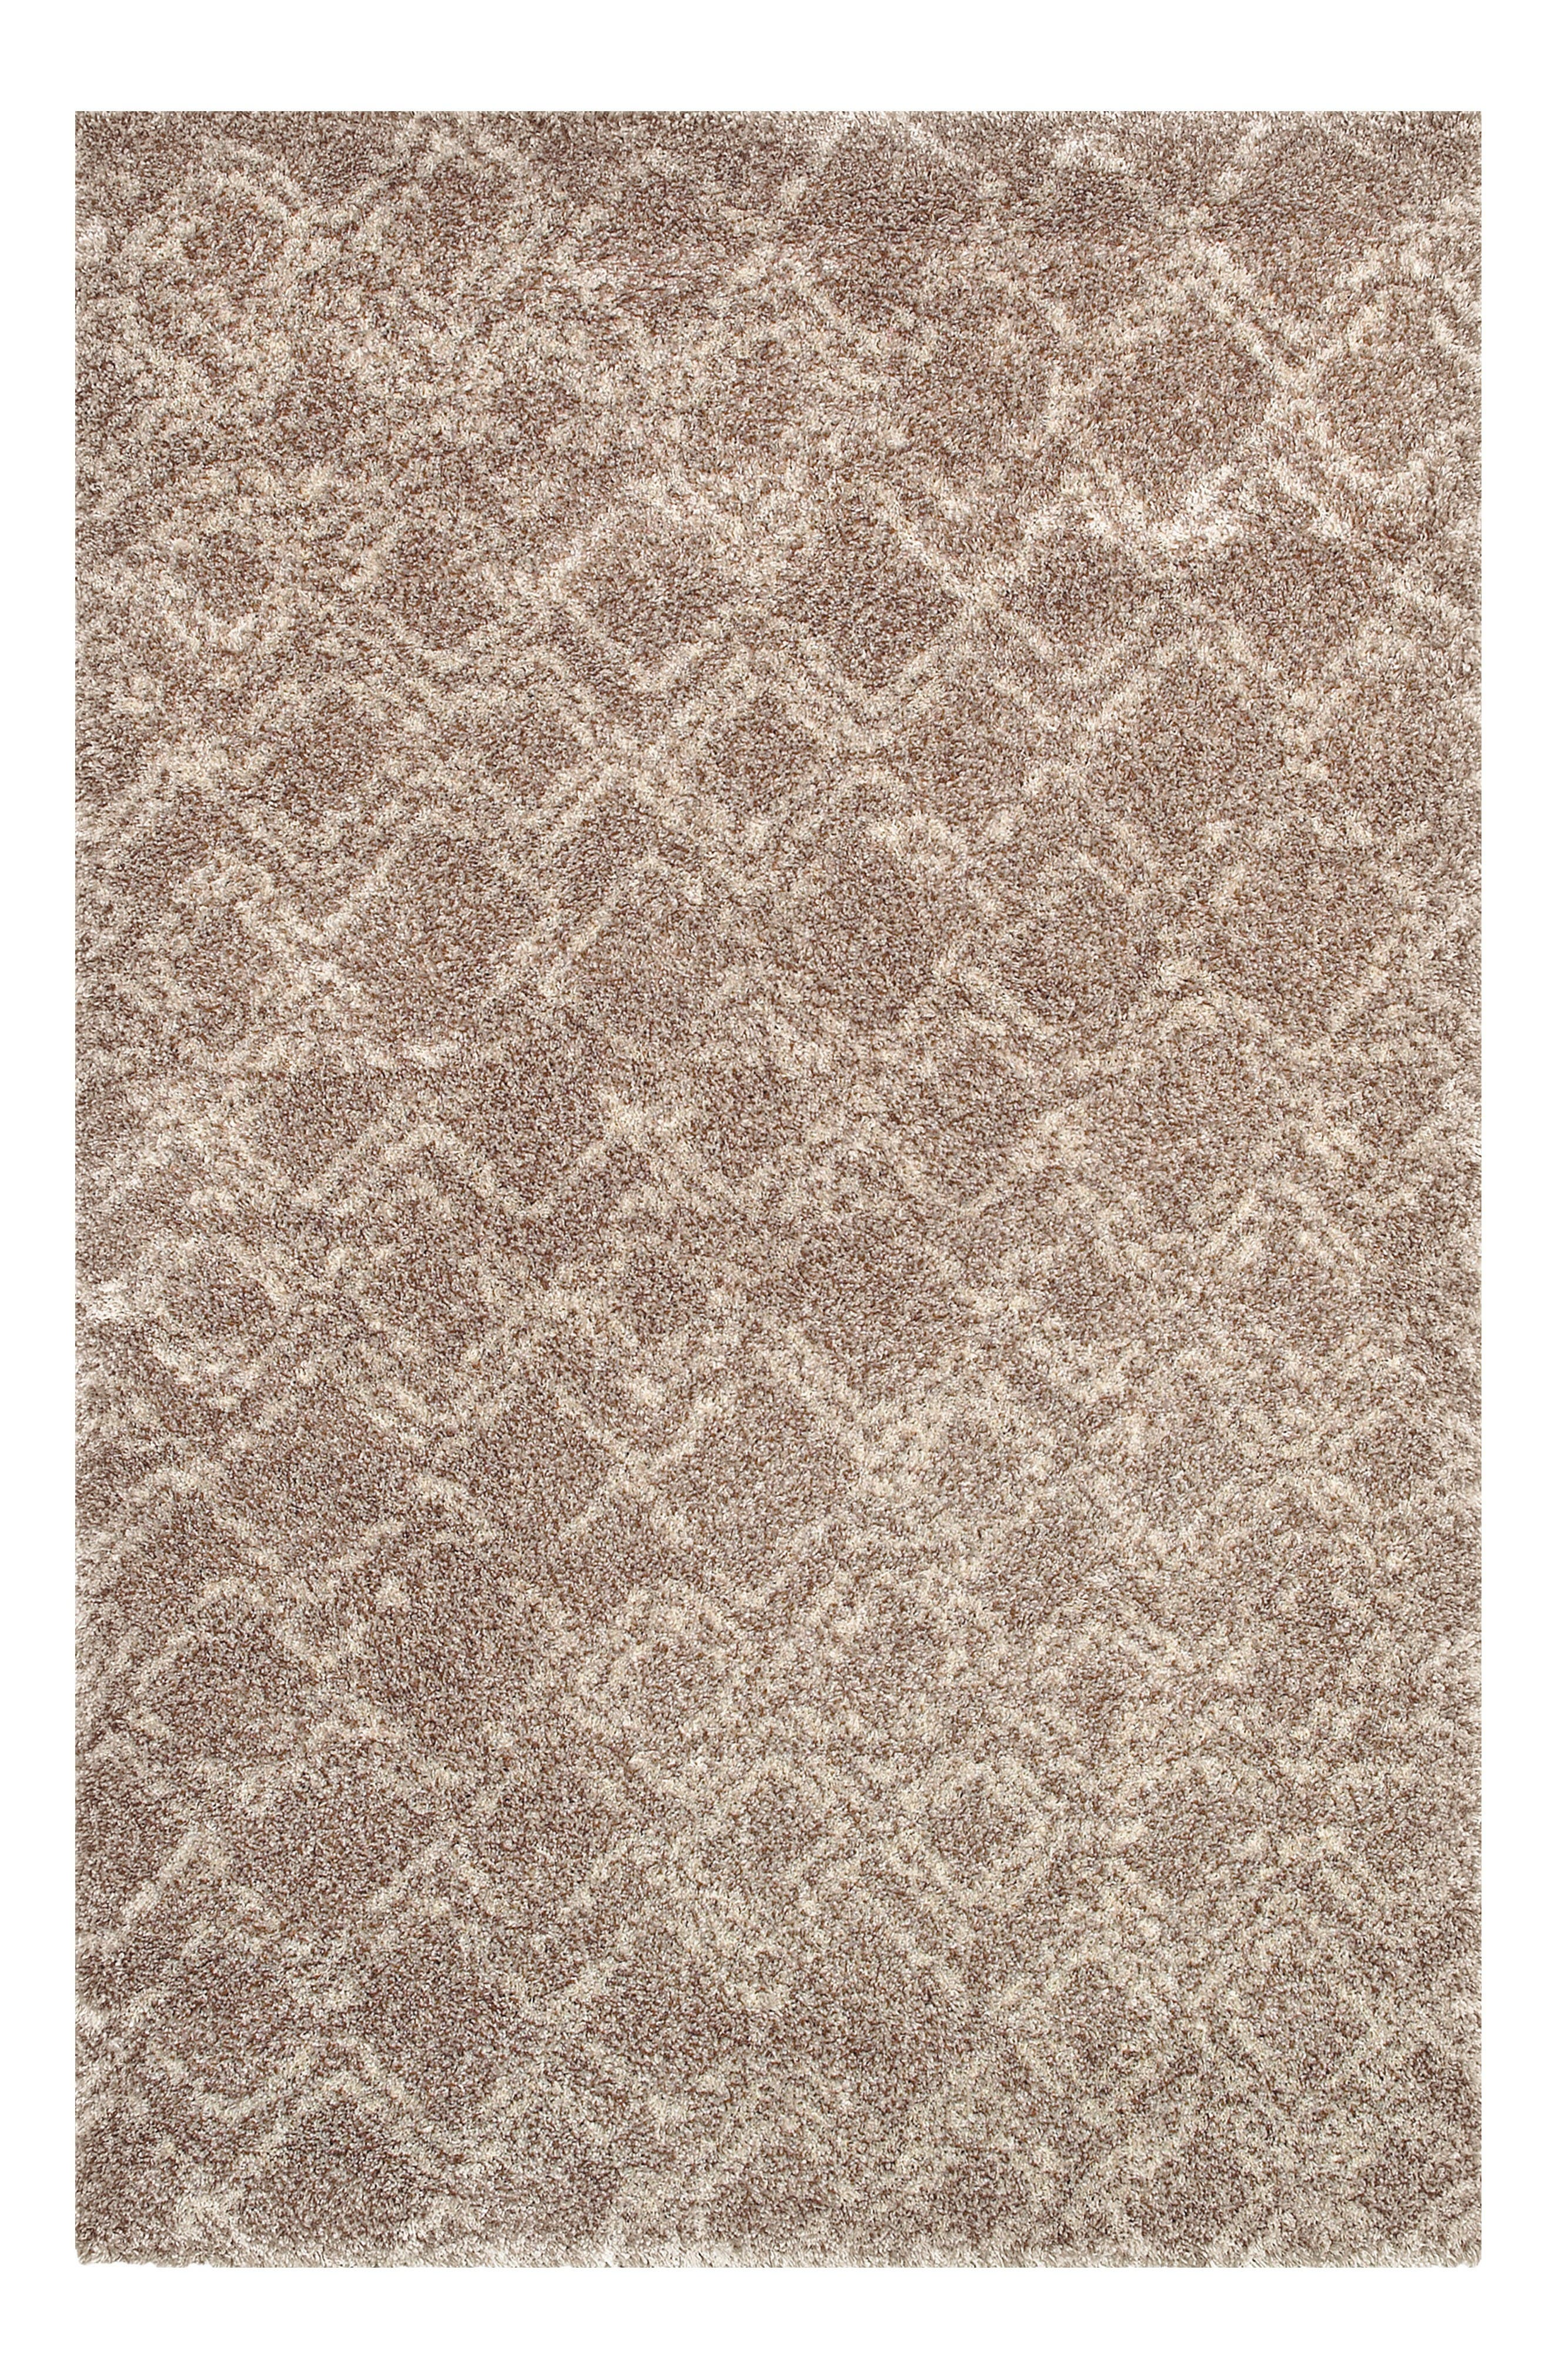 Pinnacle Area Rug,                         Main,                         color, Camel/ Ivory